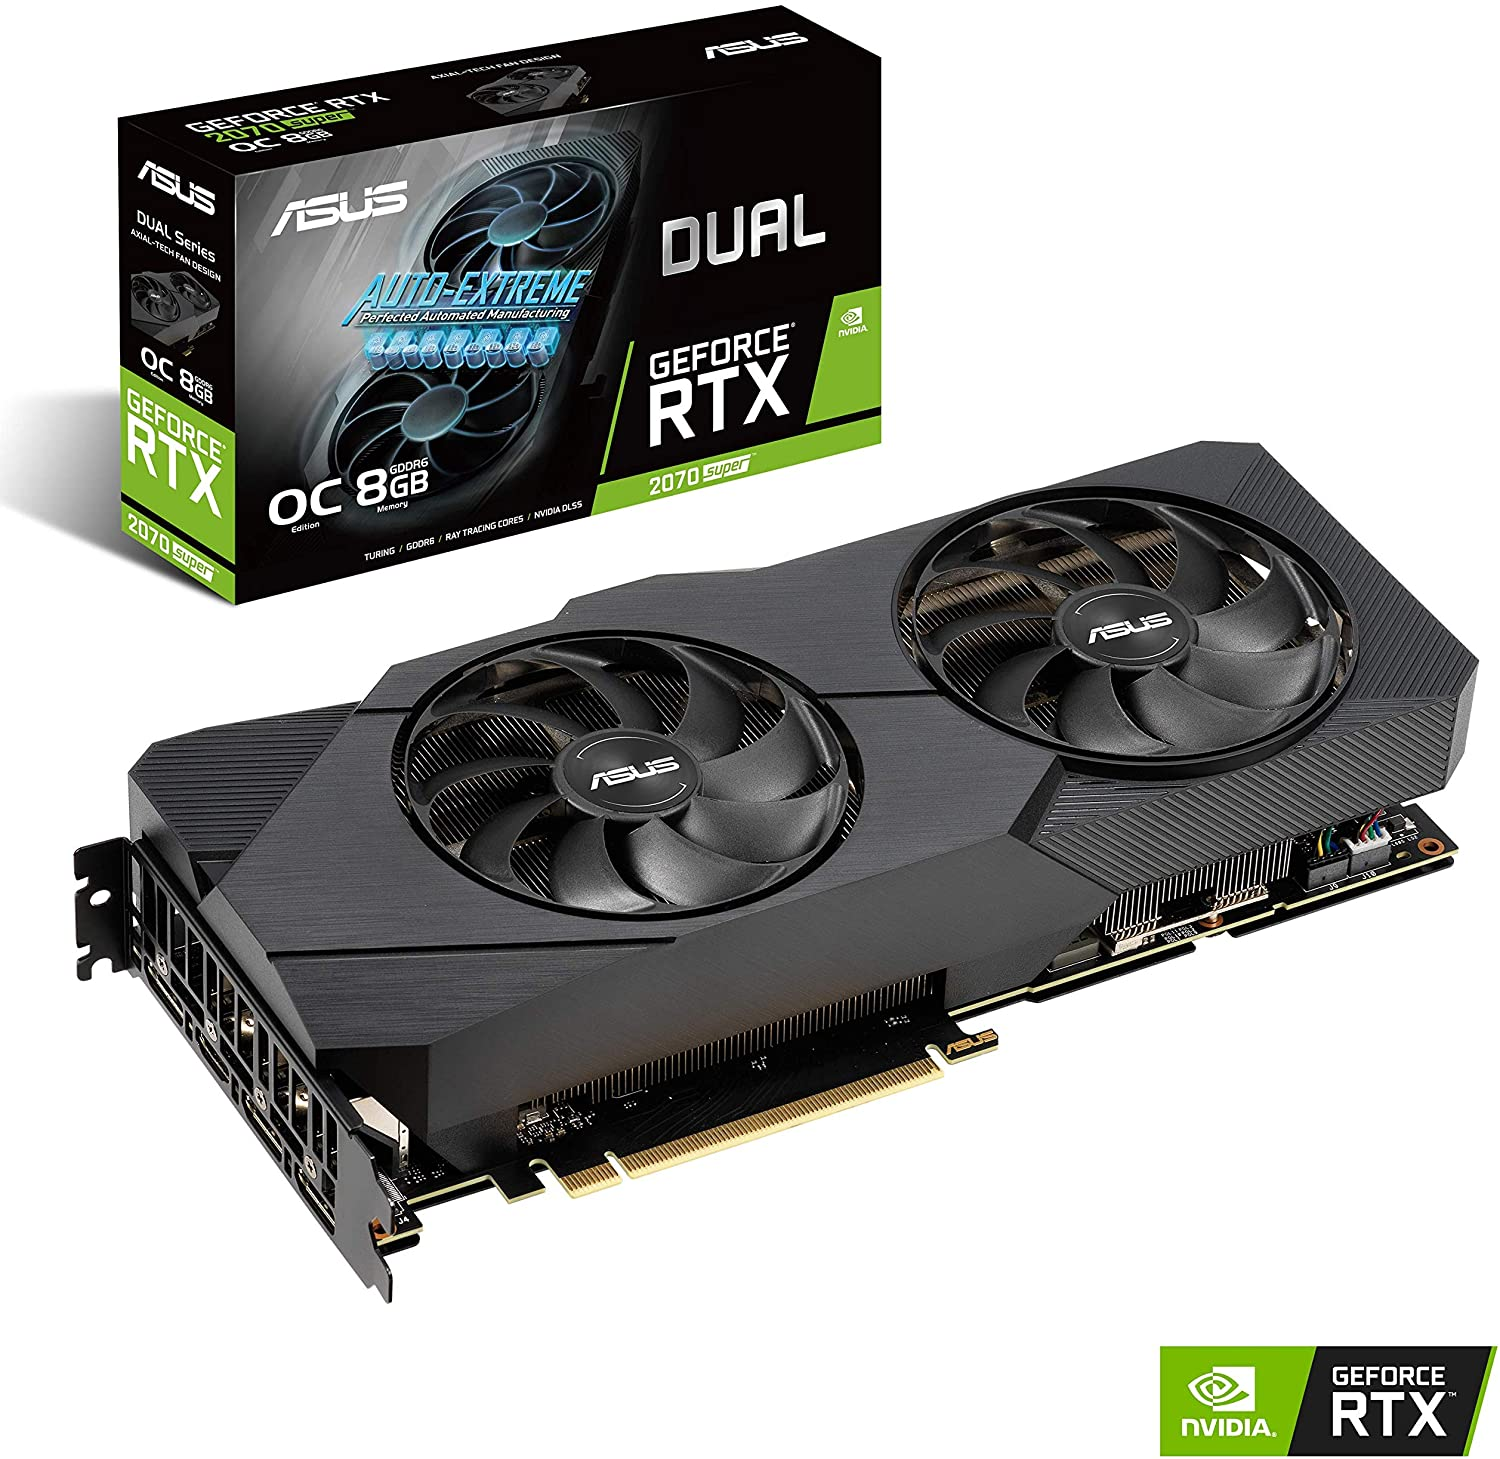 Nvidia RTX 2070 Super by ASUS